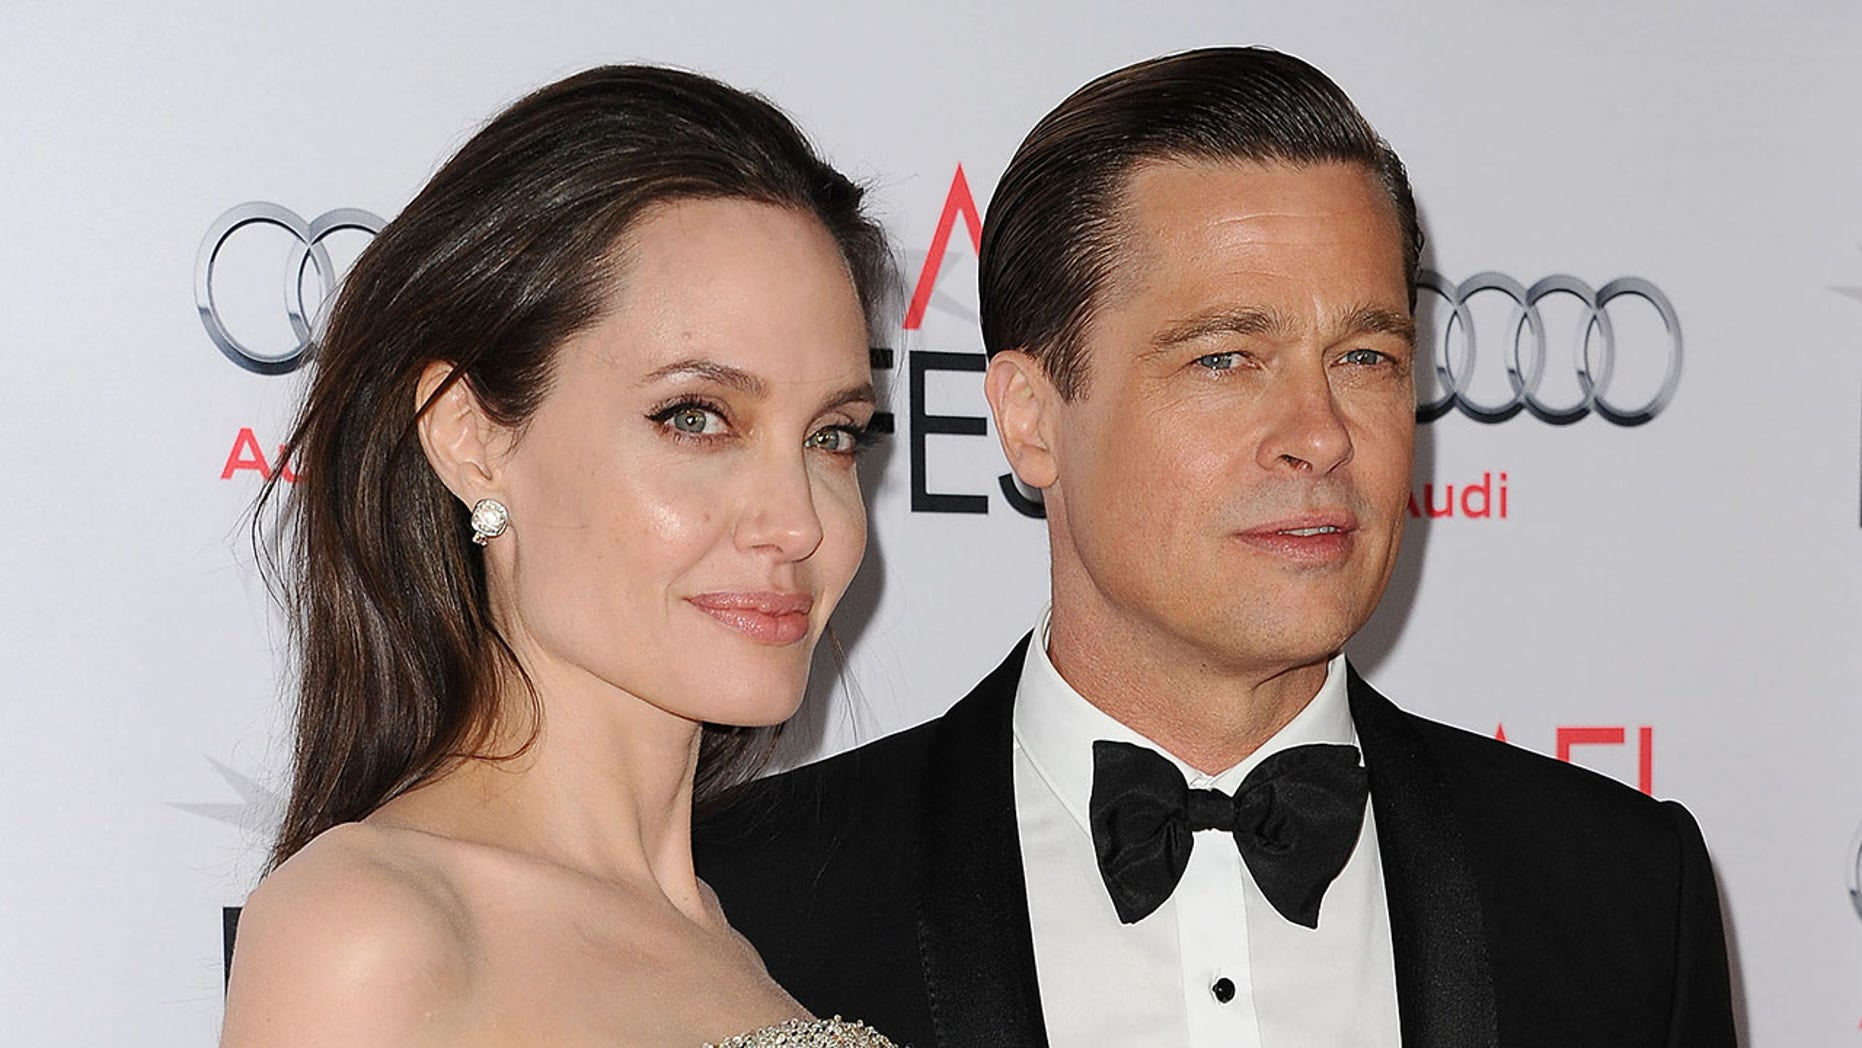 Brad Pitt has just spoken out for the first time about his divorce from Angelina Jolie